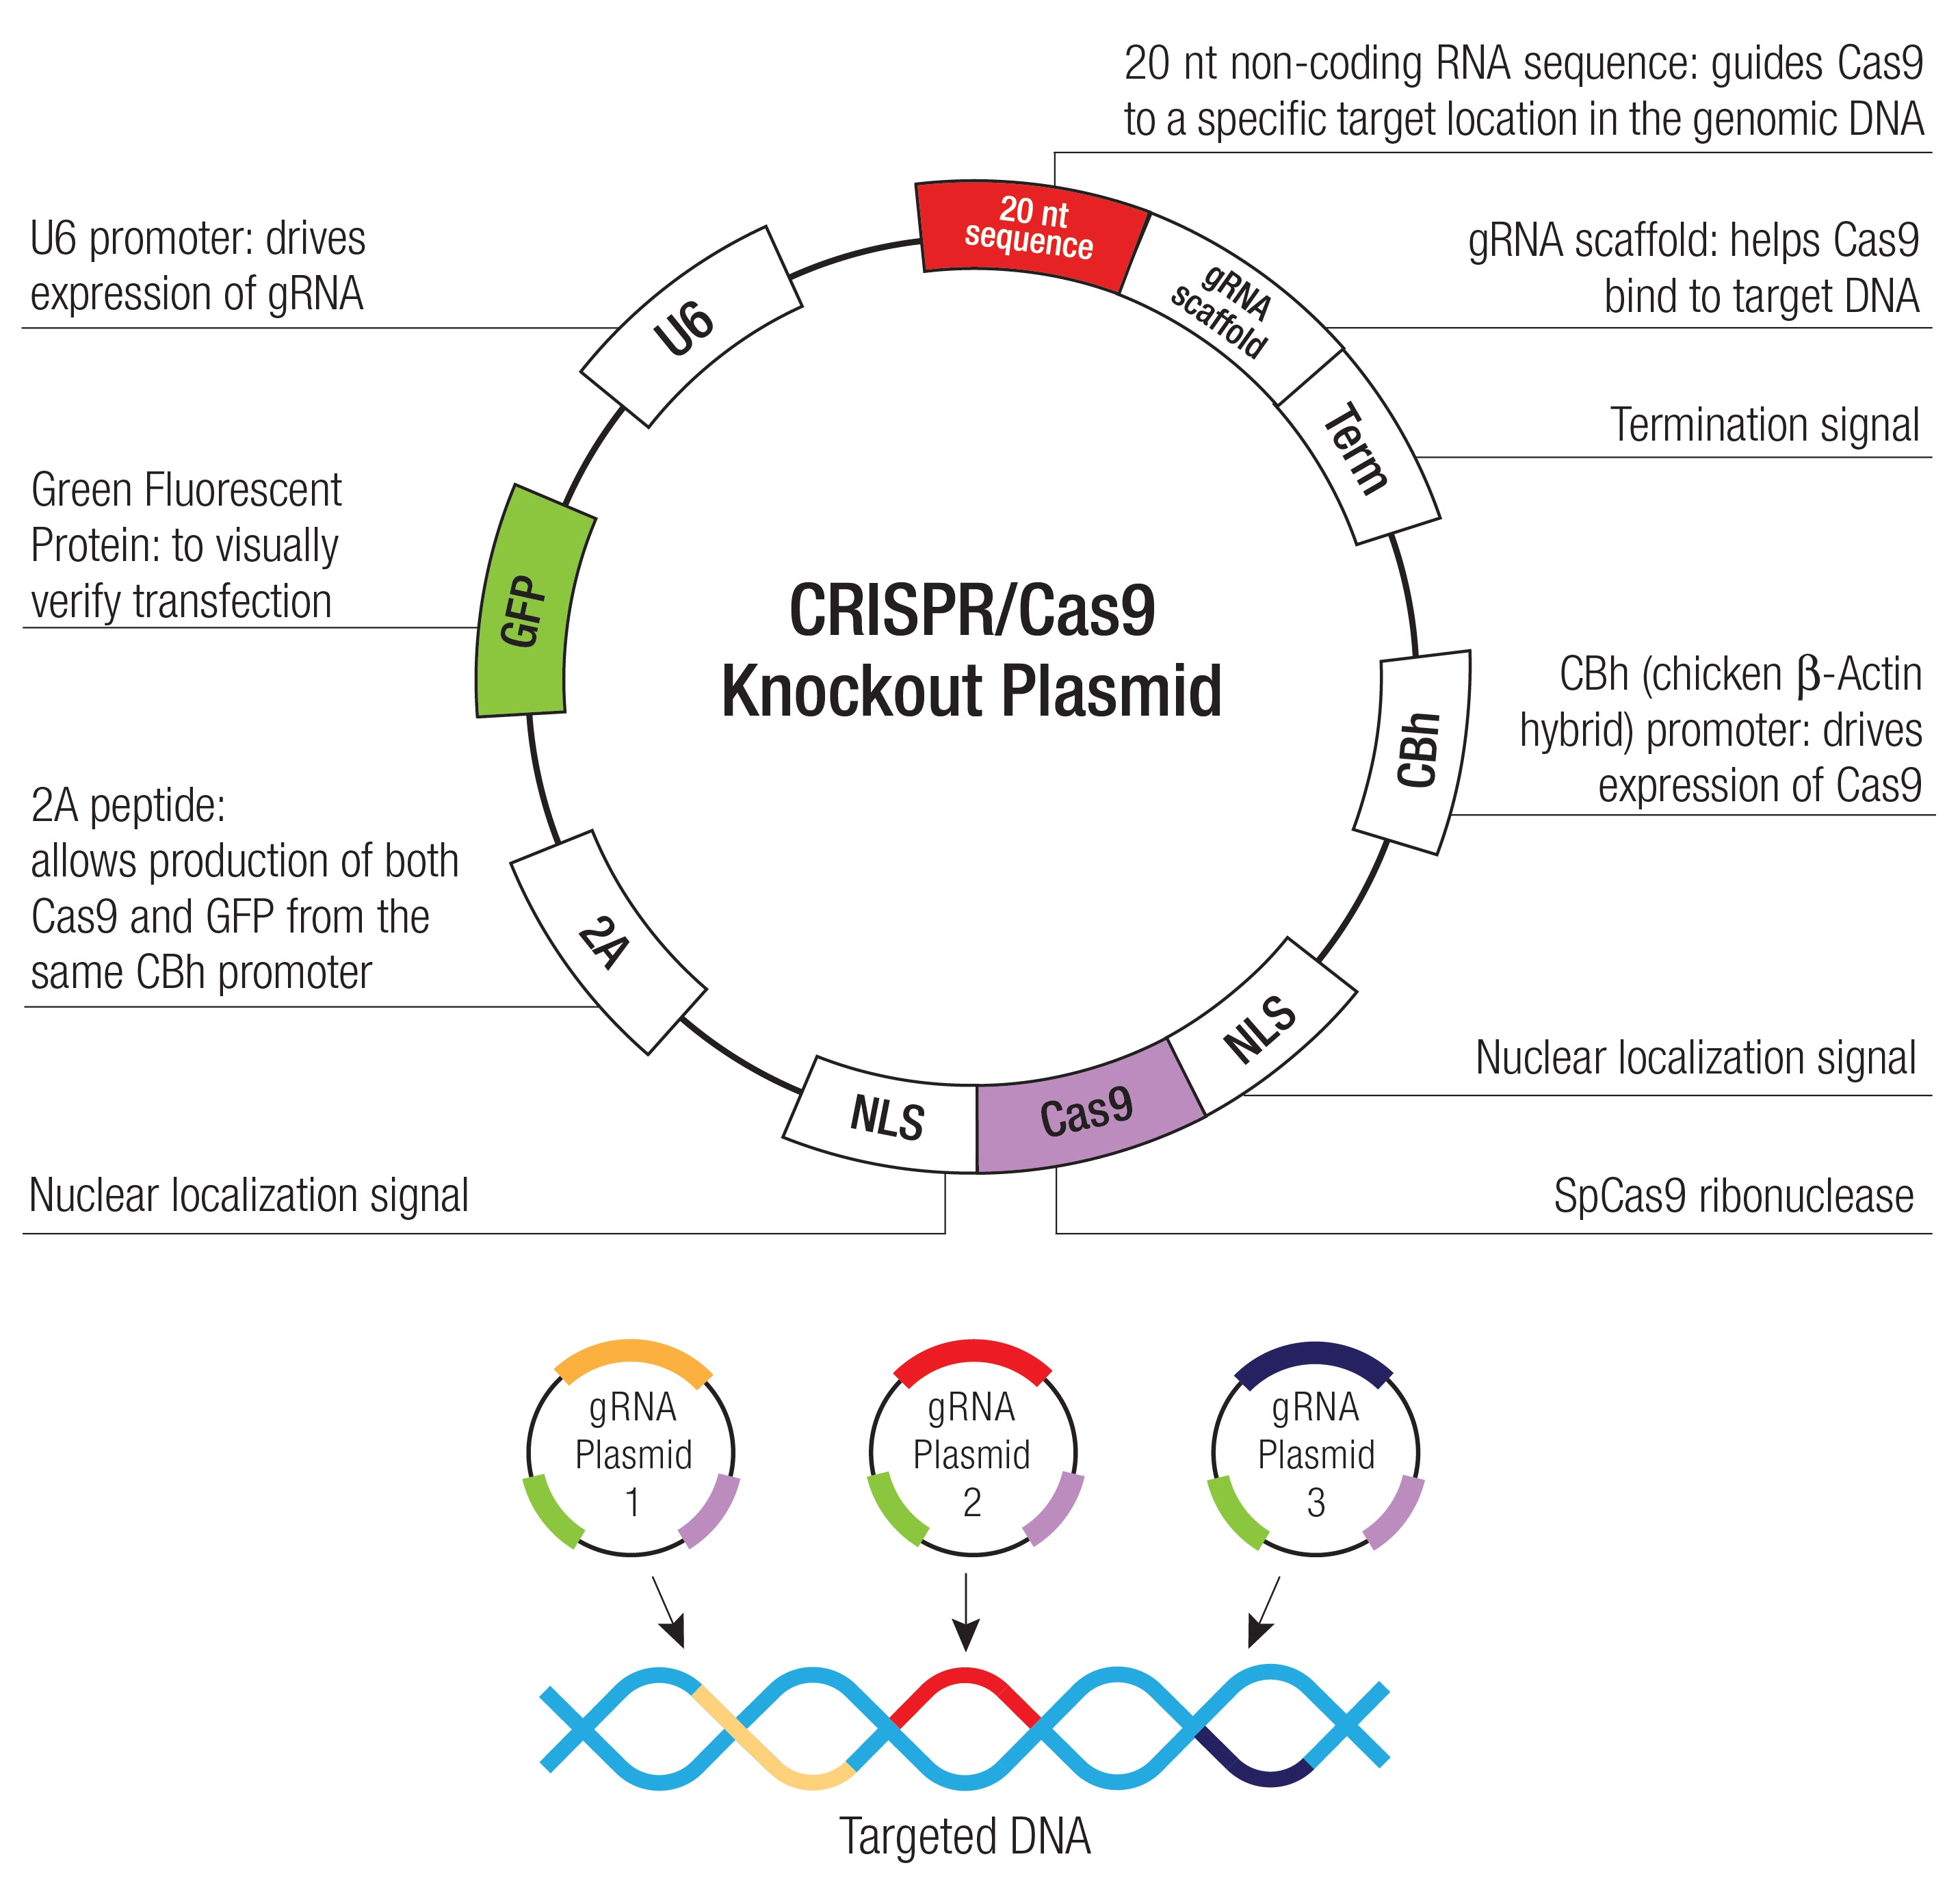 Akt3 CRISPR Knockout and Activation Products (h)